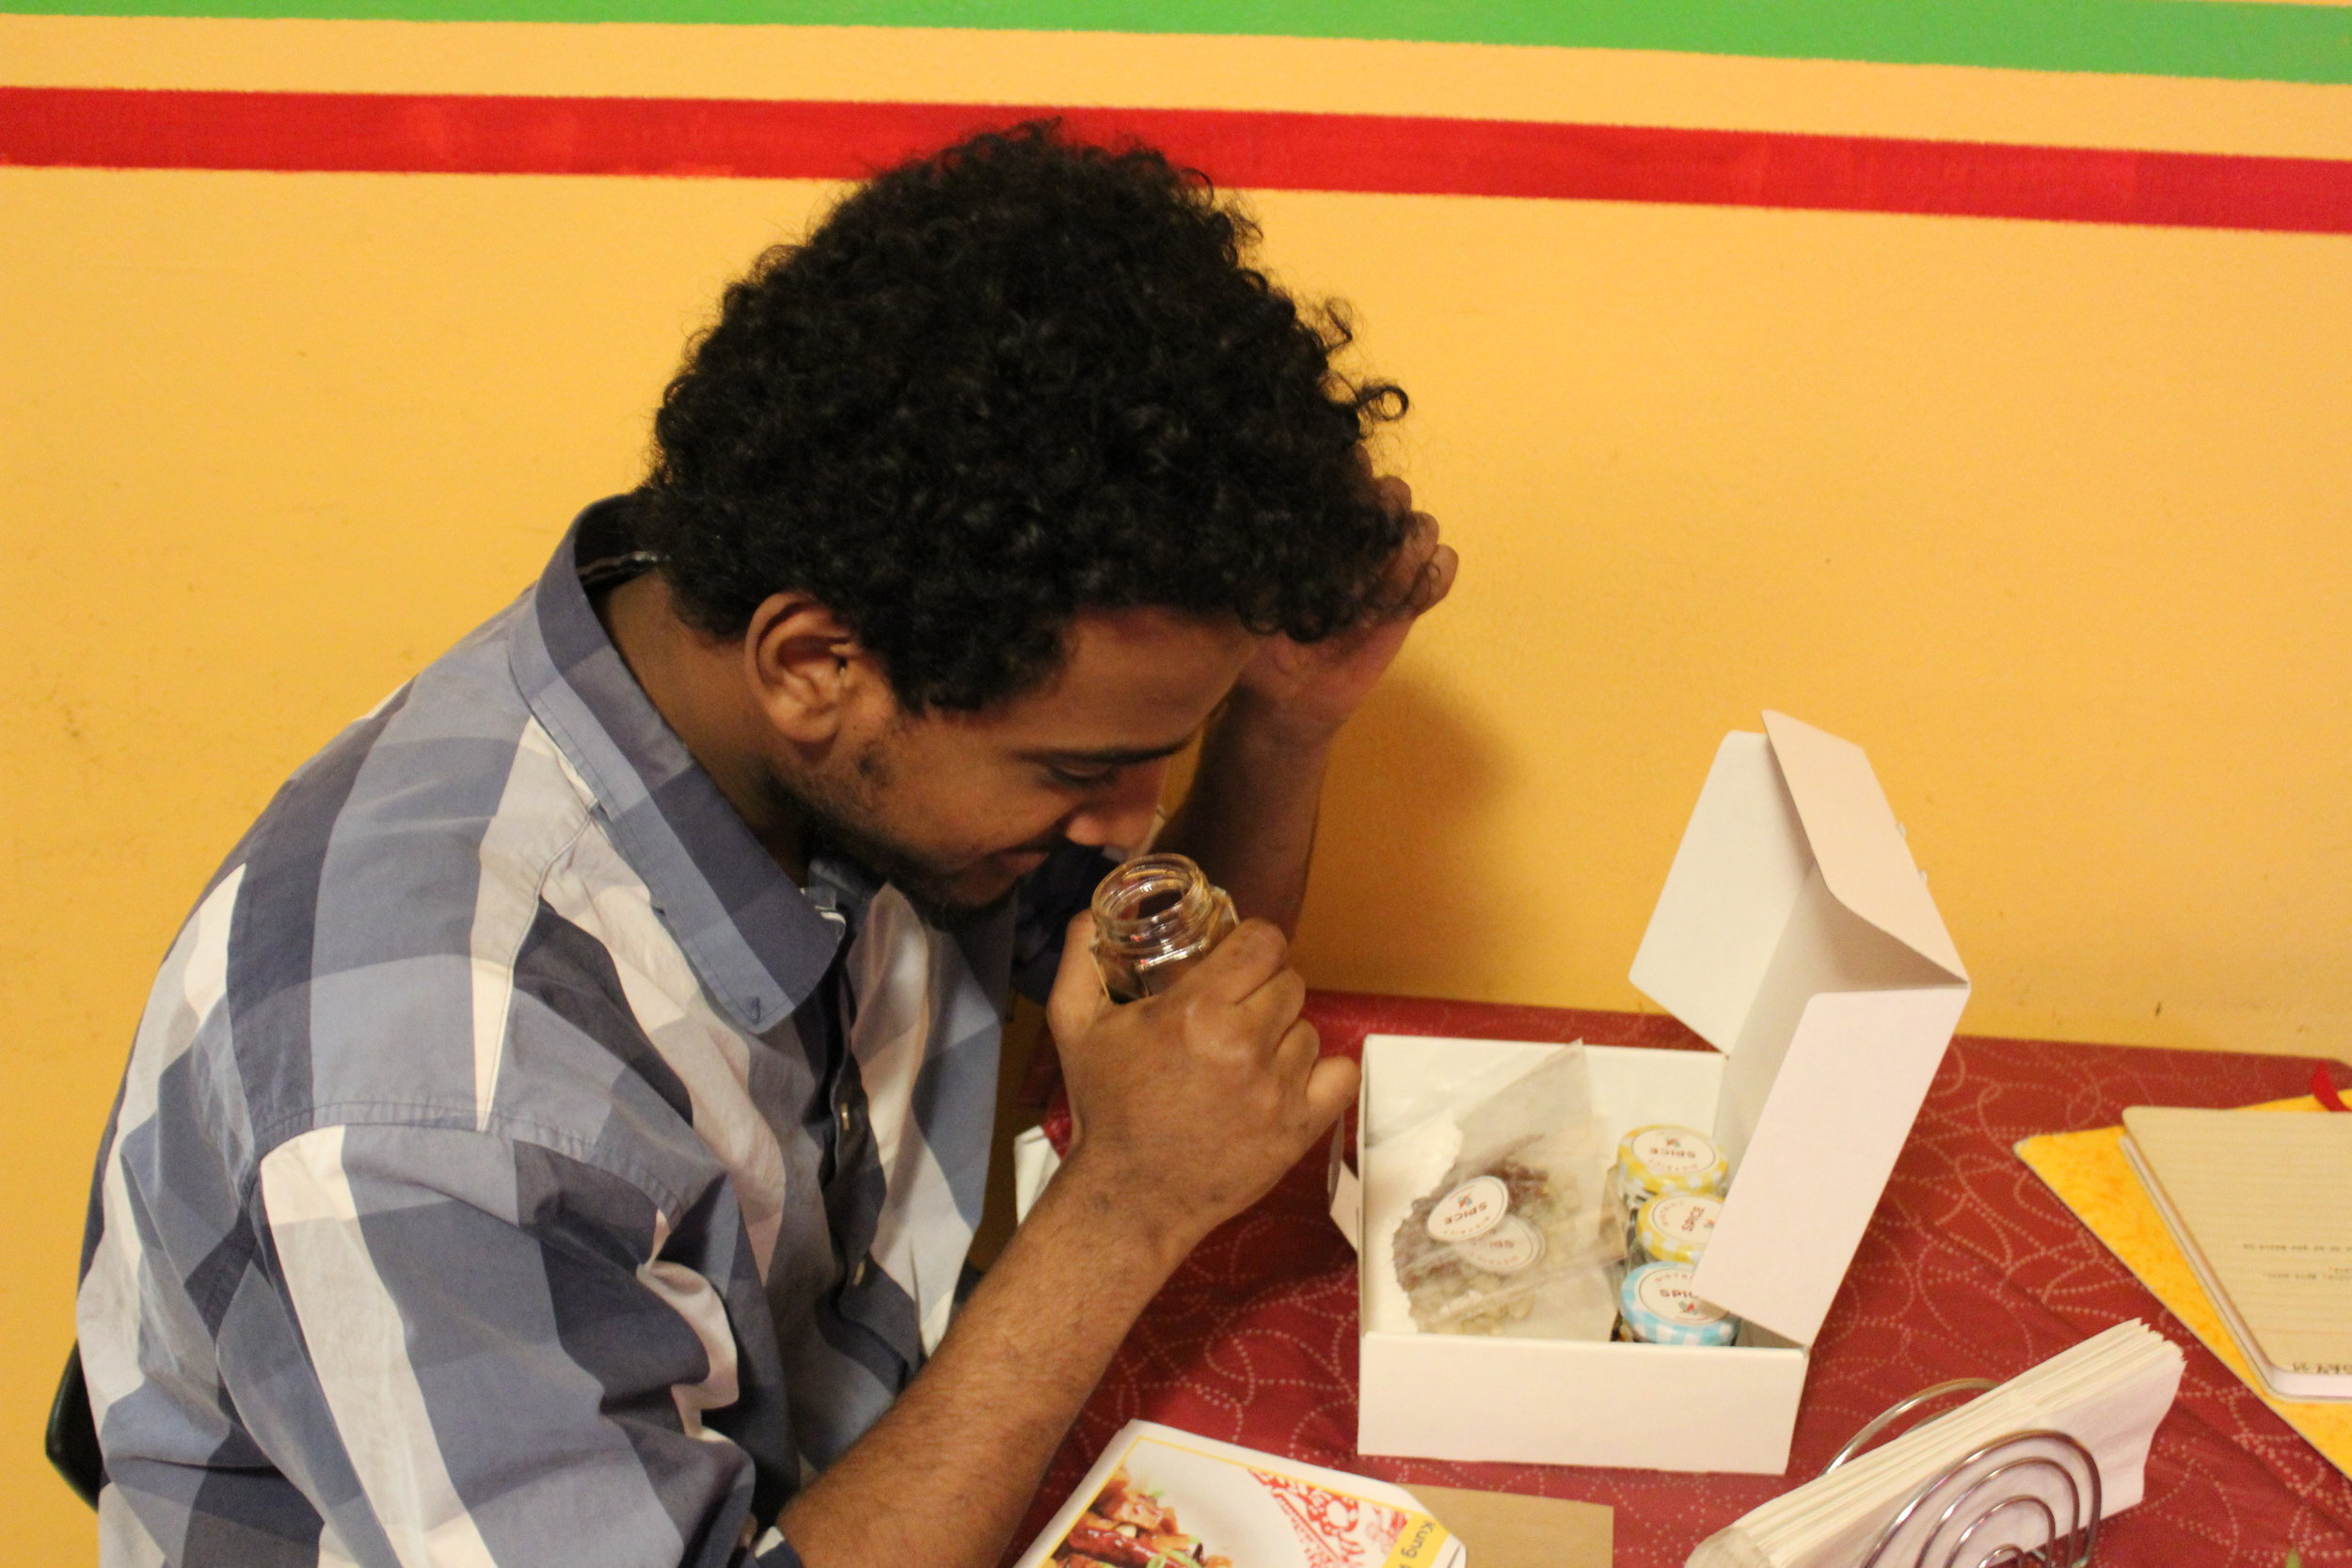 Jonas, an Eritrean employee at Ma'ed, smelling the ingredients from the Kong Pao flavor kit